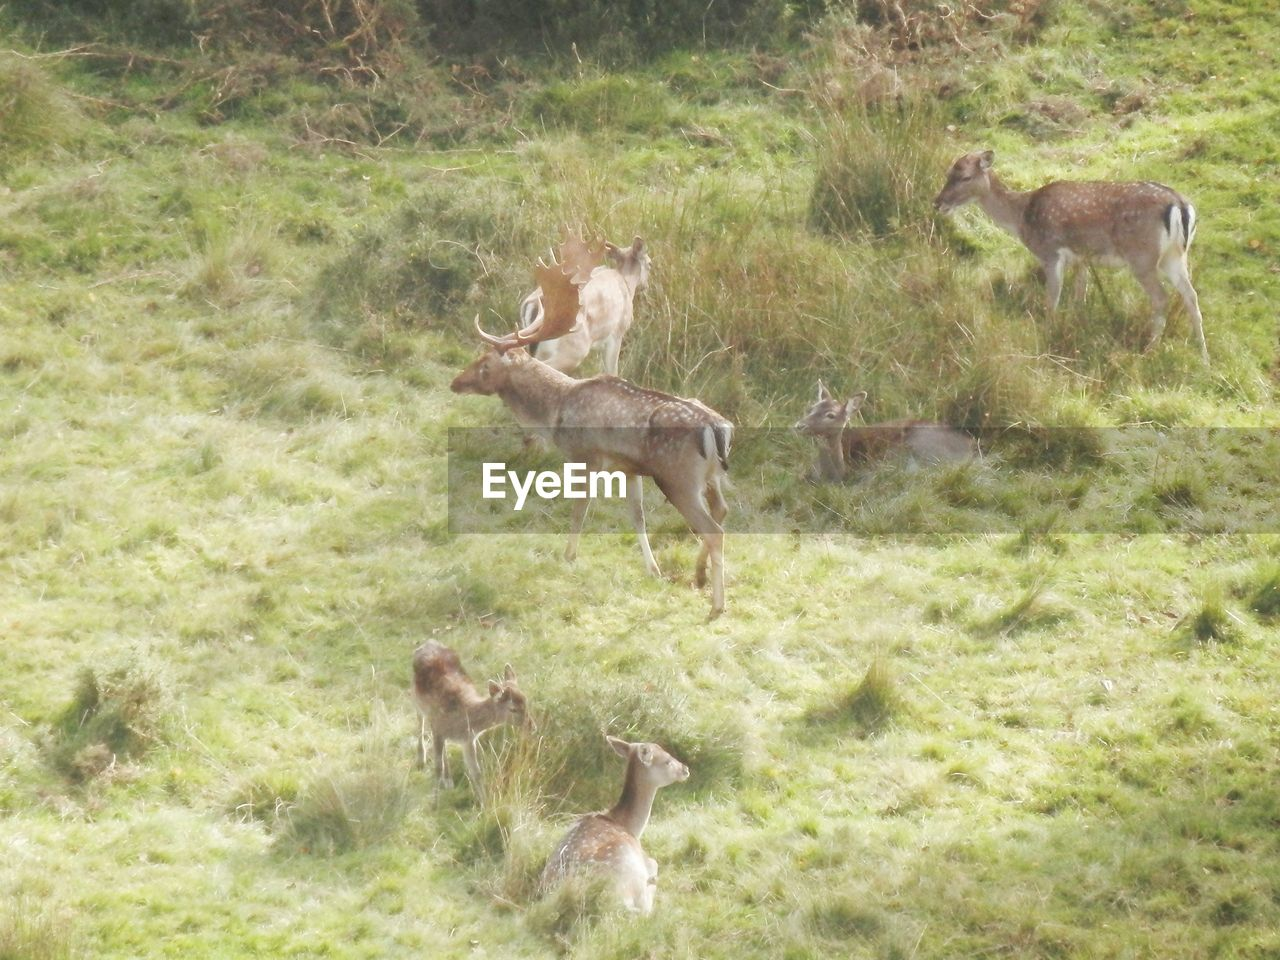 animals in the wild, animal themes, grass, animal wildlife, deer, nature, mammal, day, field, outdoors, young animal, no people, jumping, growth, tree